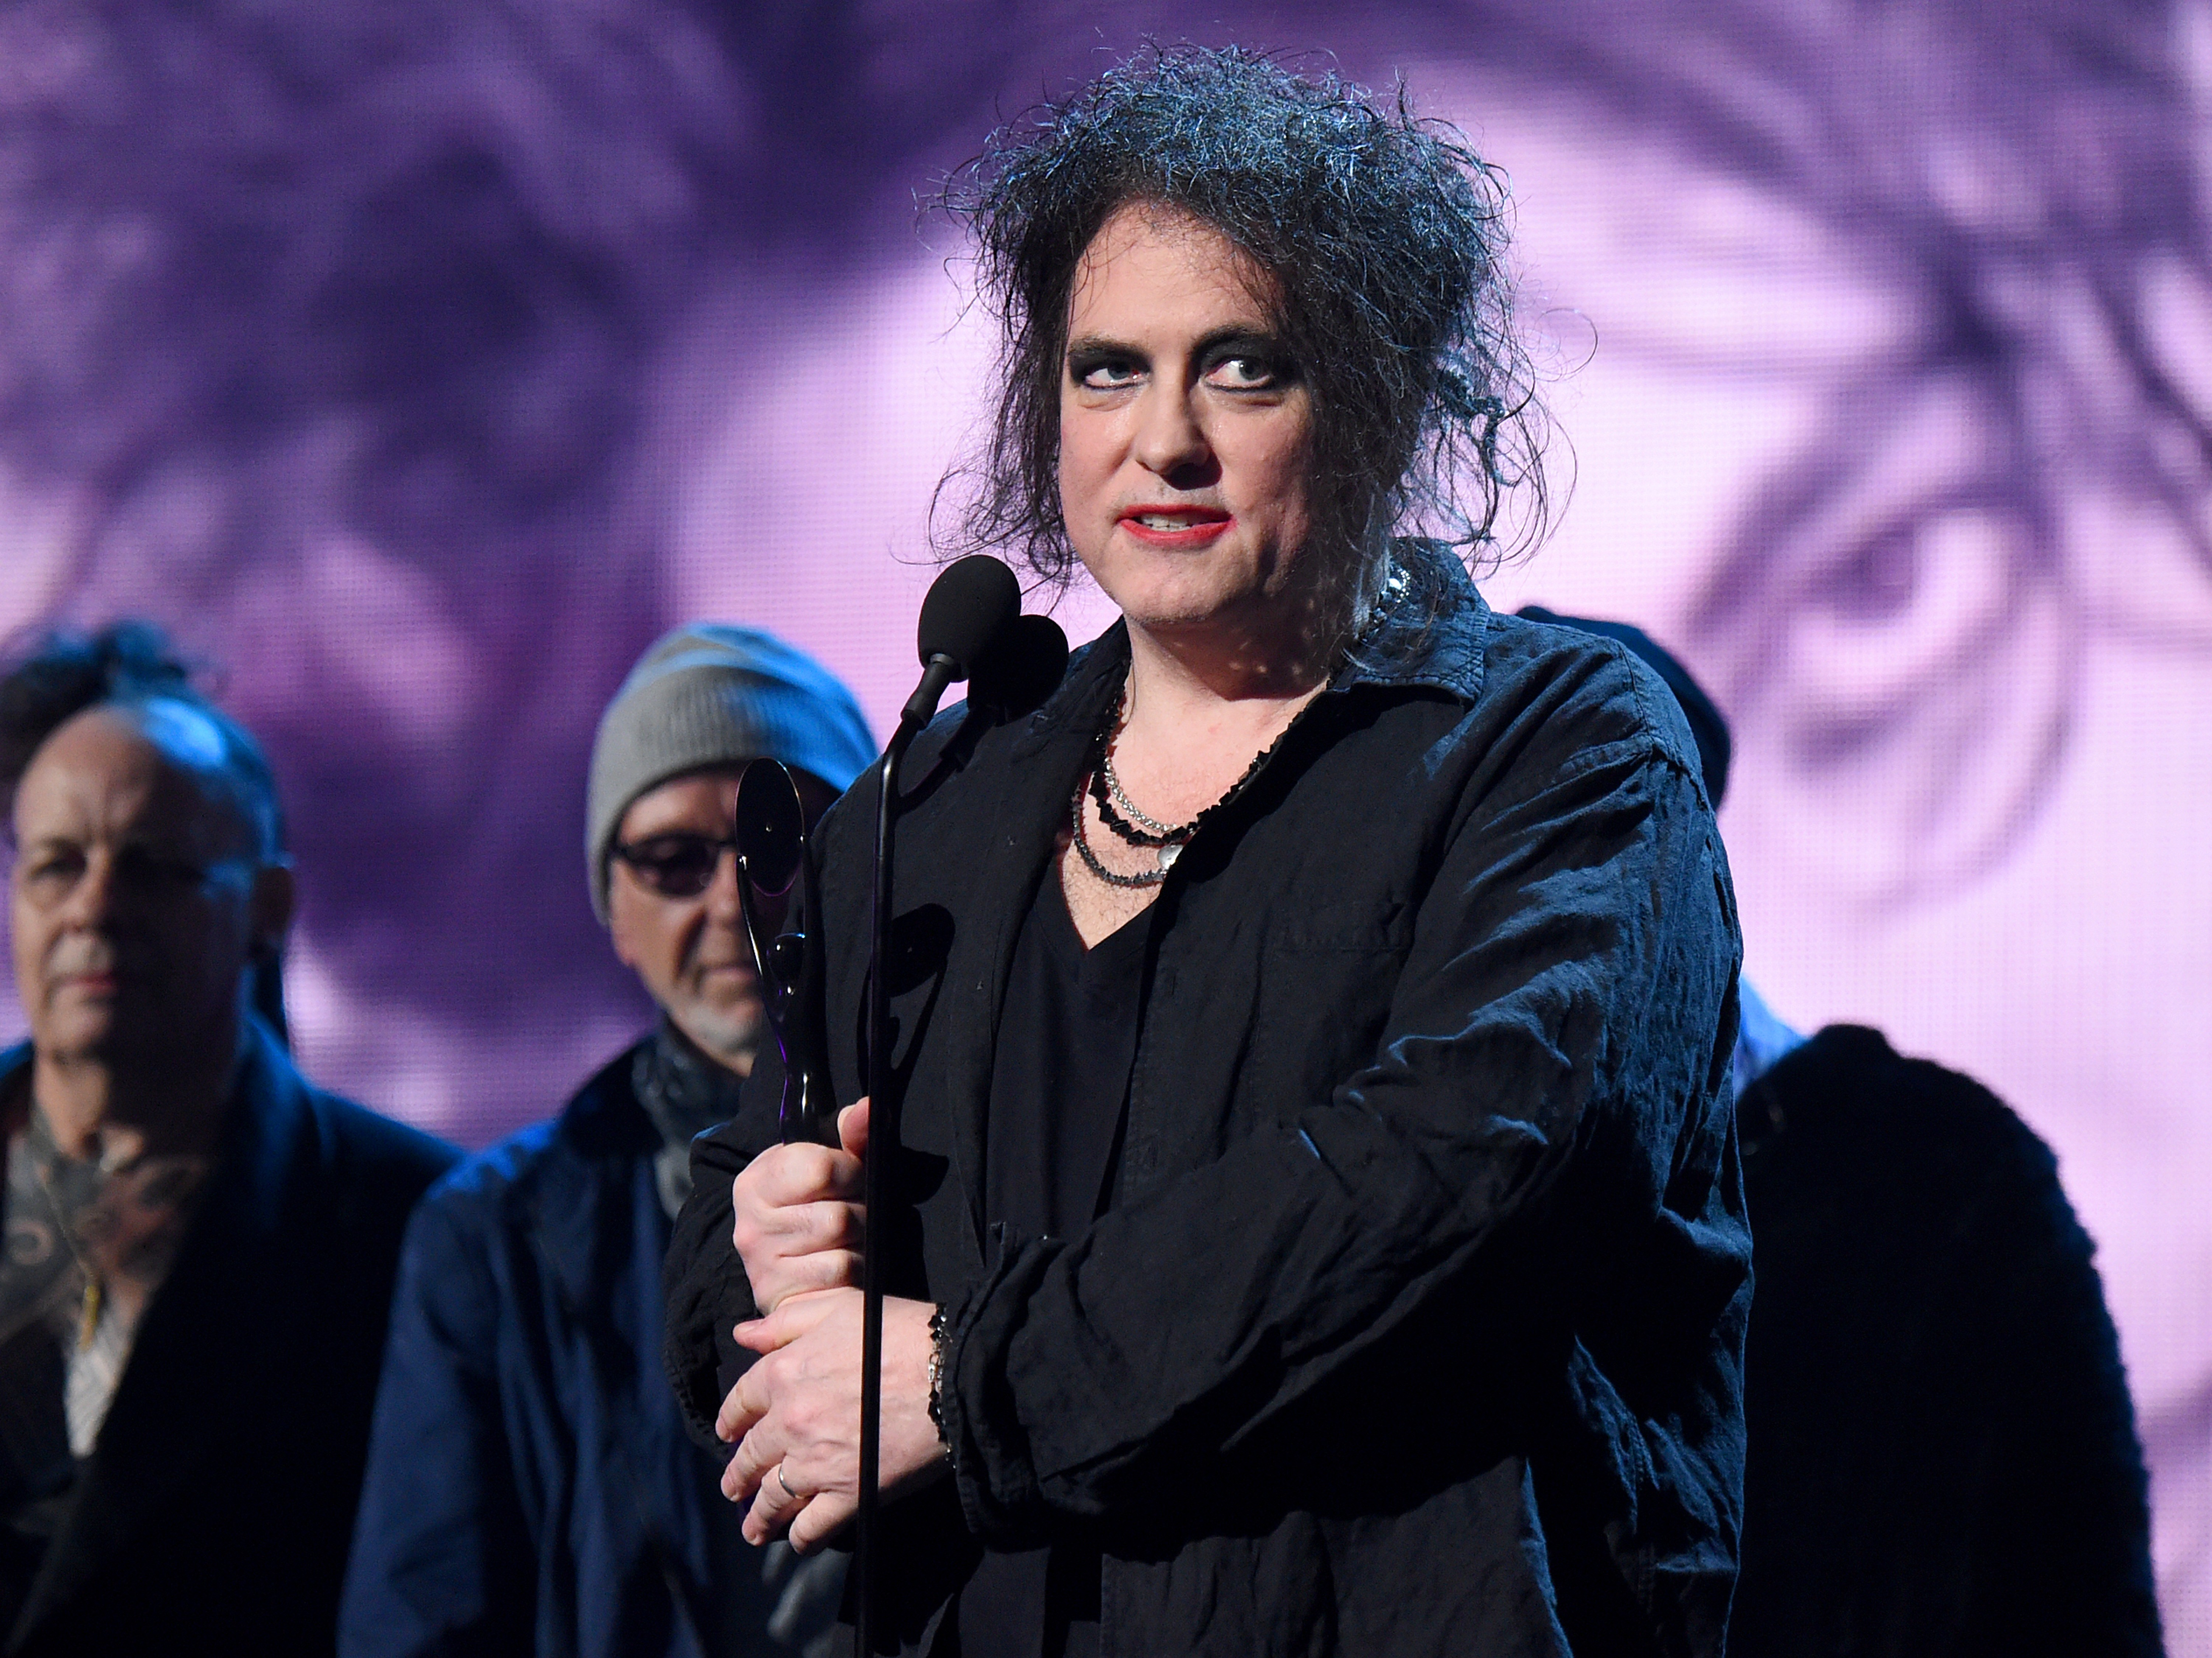 the-cure-perform-get-inducted-into-rock-and-roll-hall-of-fame-by-trent-reznor